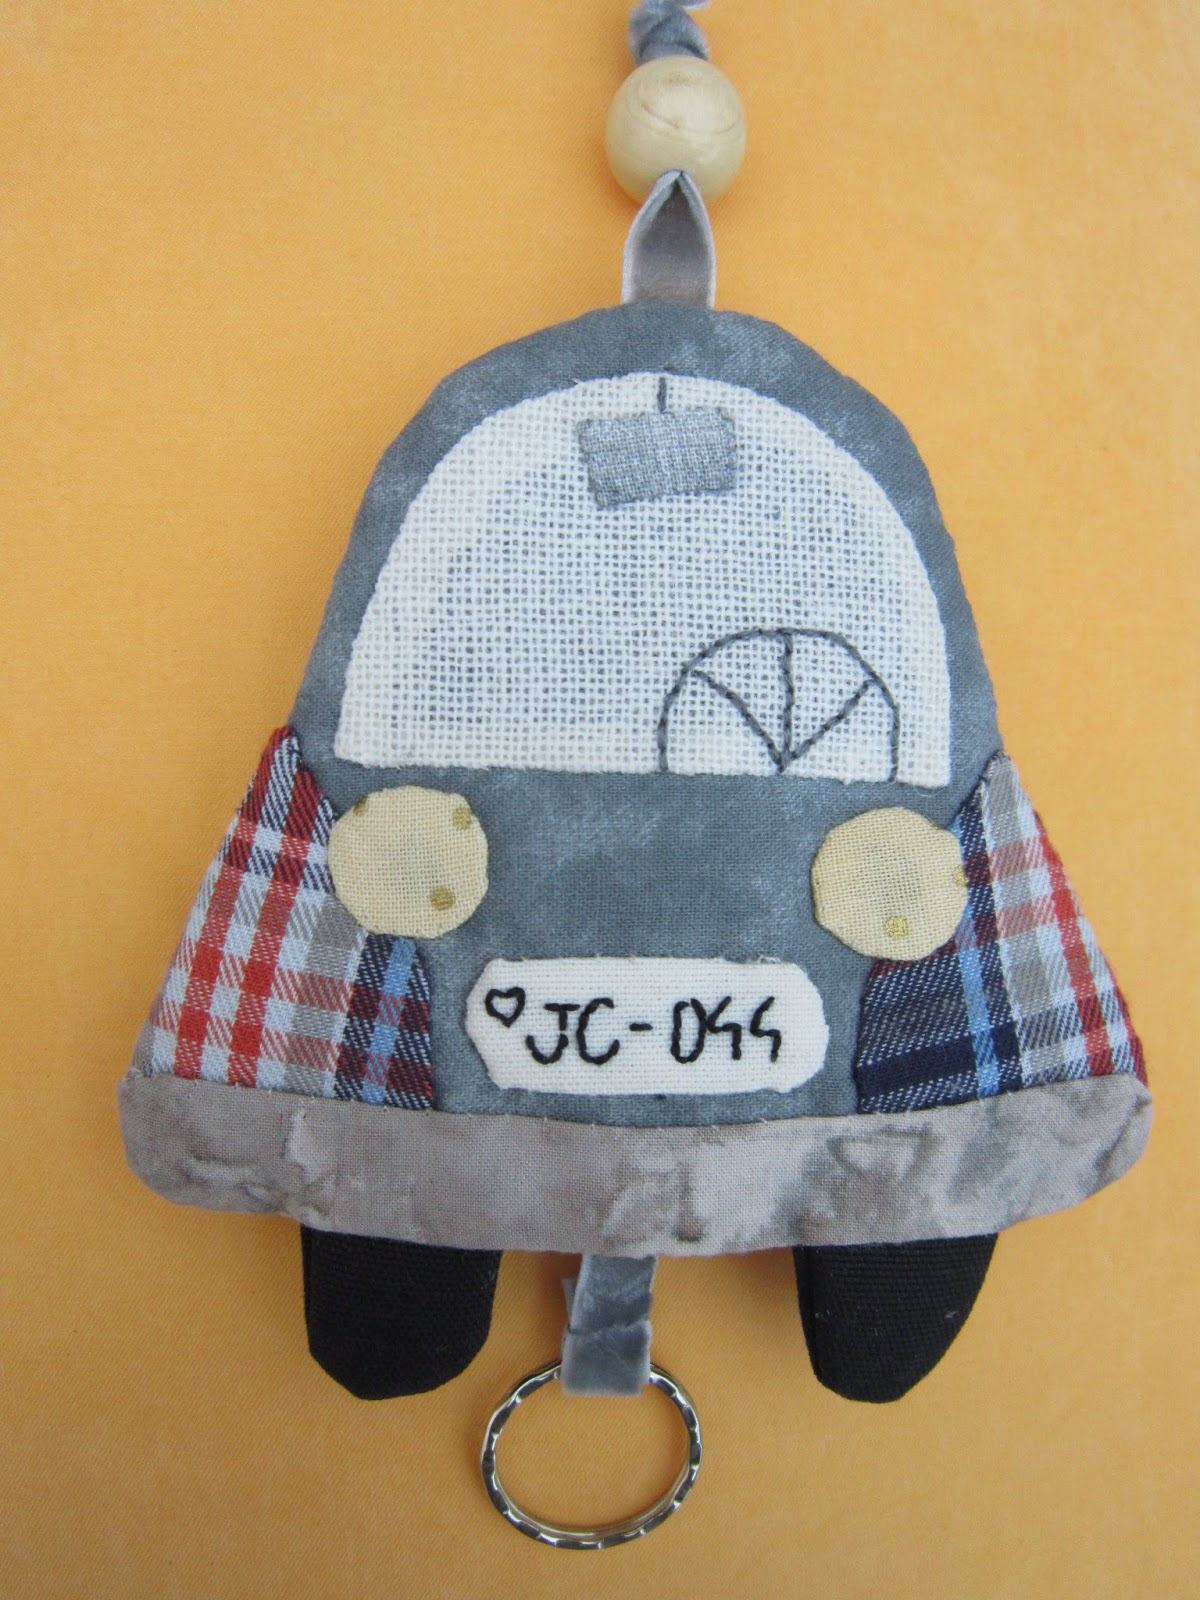 costura, sewing, couture, patchwork, appliqué, llavero coche, porte clé voiture, car key holder